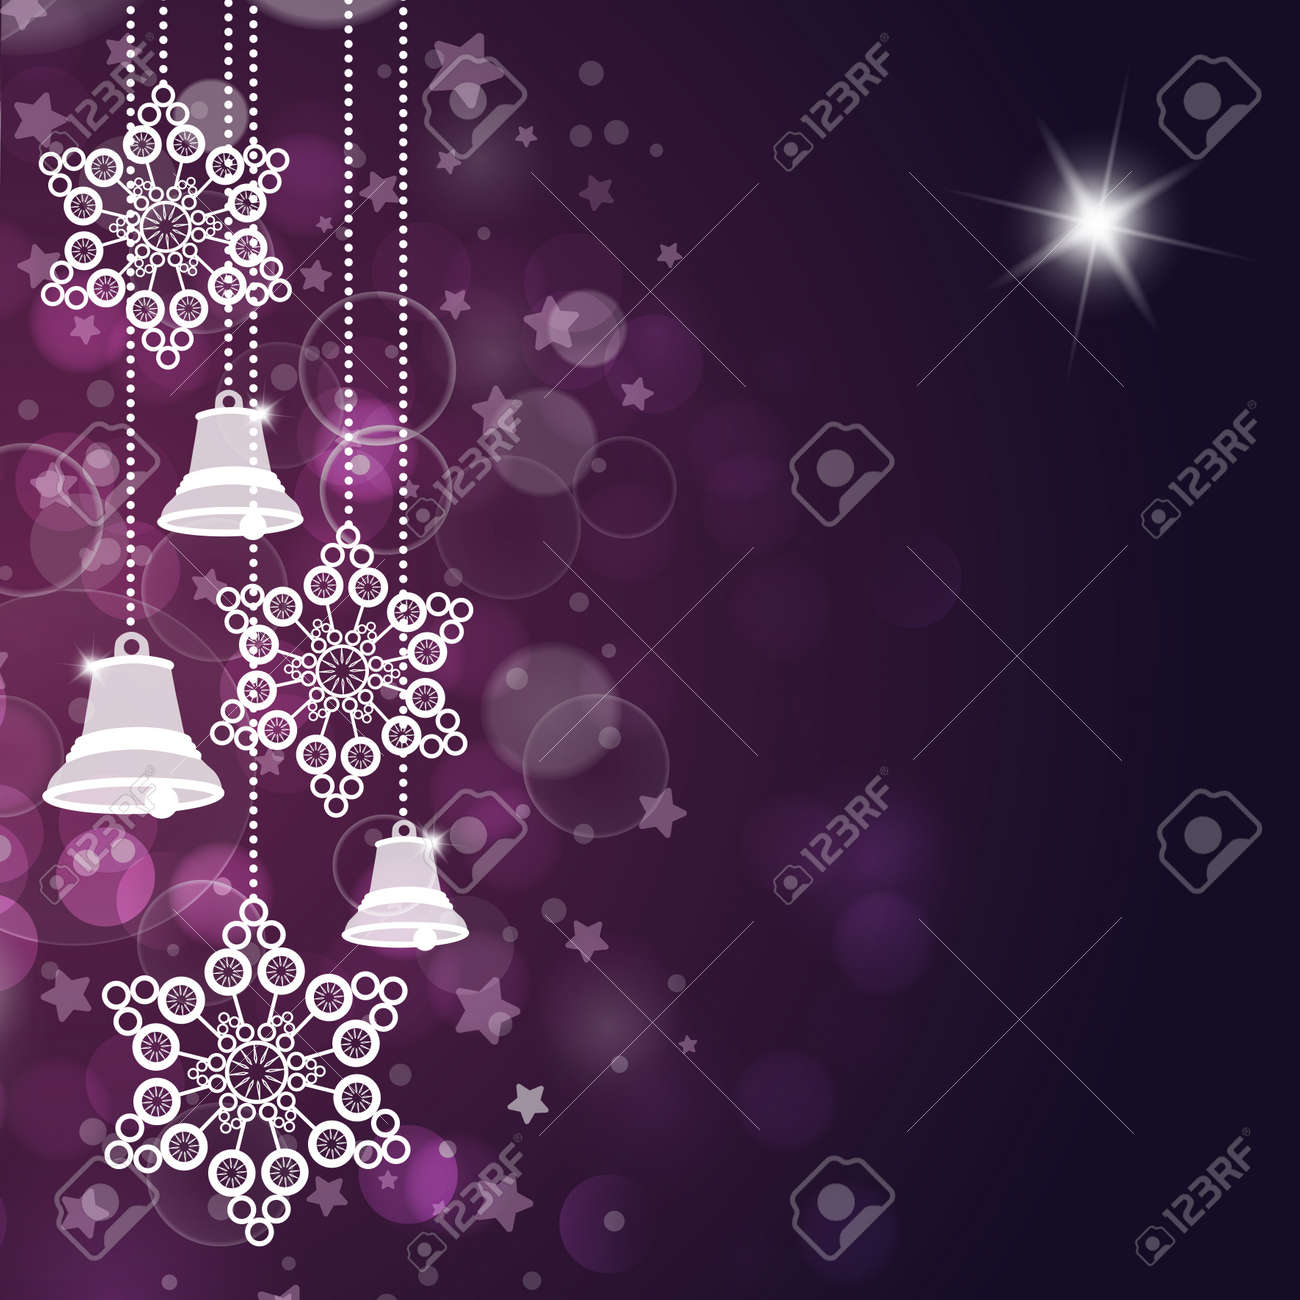 Violet christmas background with bells and stars. Vector Stock Vector - 16540208